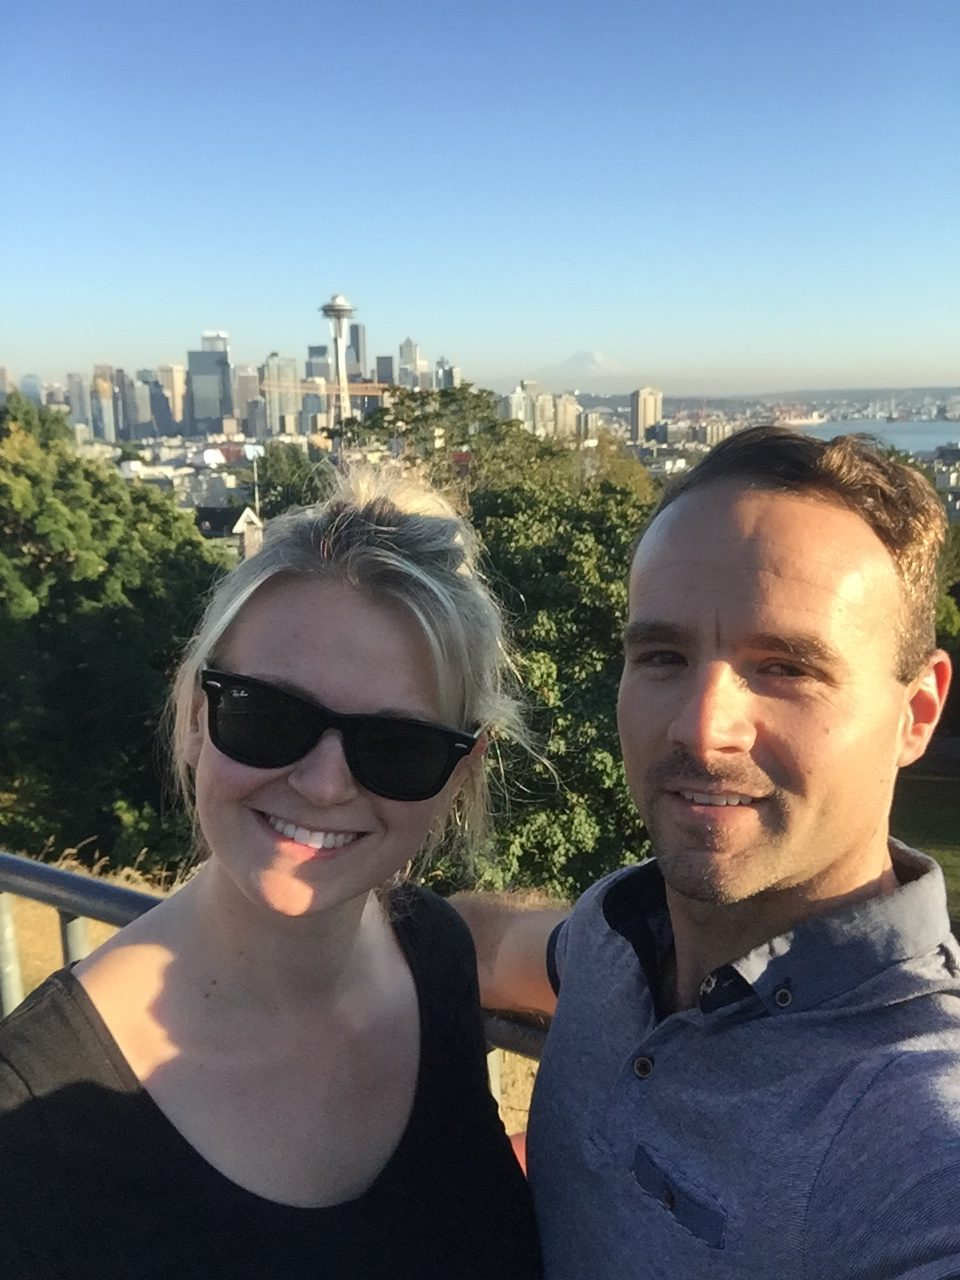 Couple in Kerry Park, Seattle